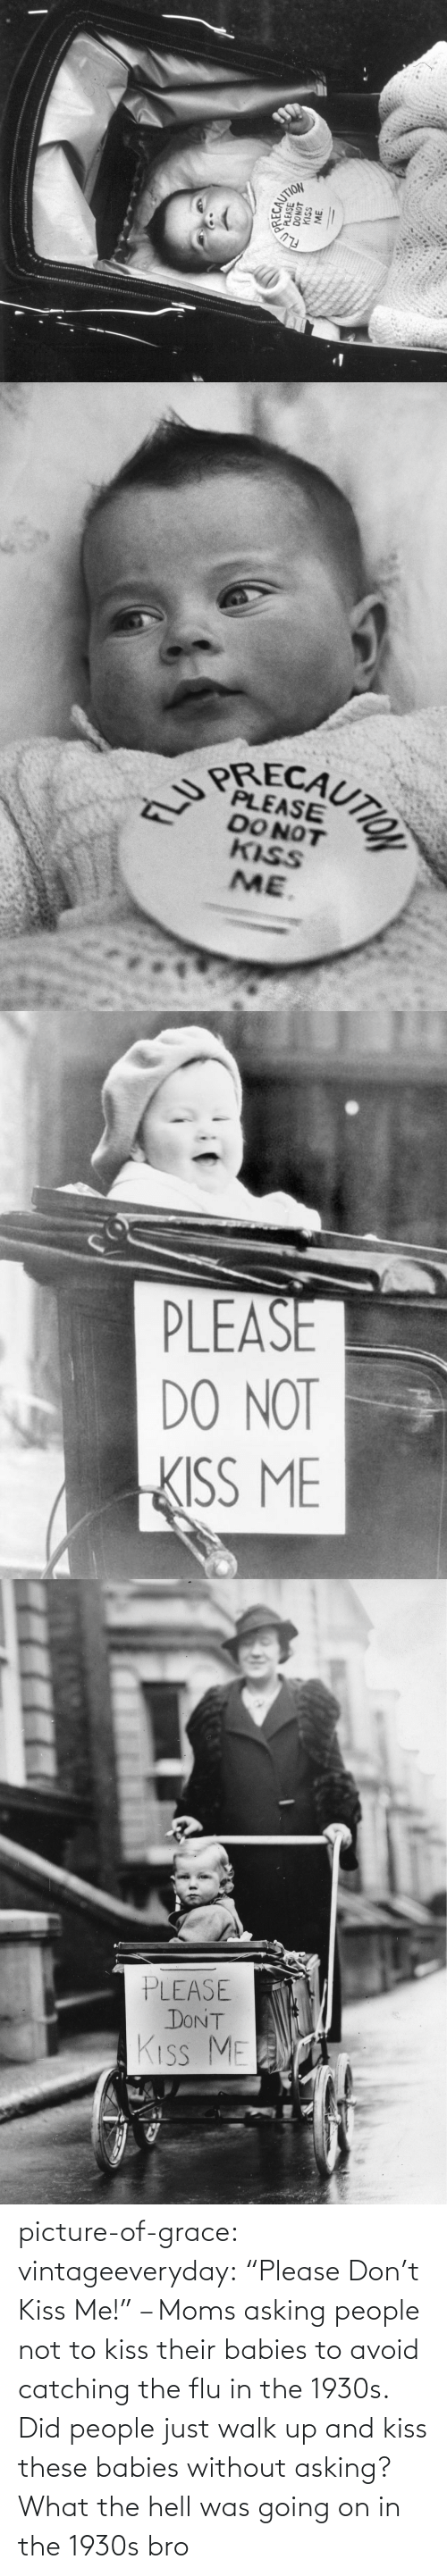 "Avoid: picture-of-grace:  vintageeveryday: ""Please Don't Kiss Me!"" – Moms asking people not to kiss their babies to avoid catching the flu in the 1930s.   Did people just walk up and kiss these babies without asking? What the hell was going on in the 1930s bro"